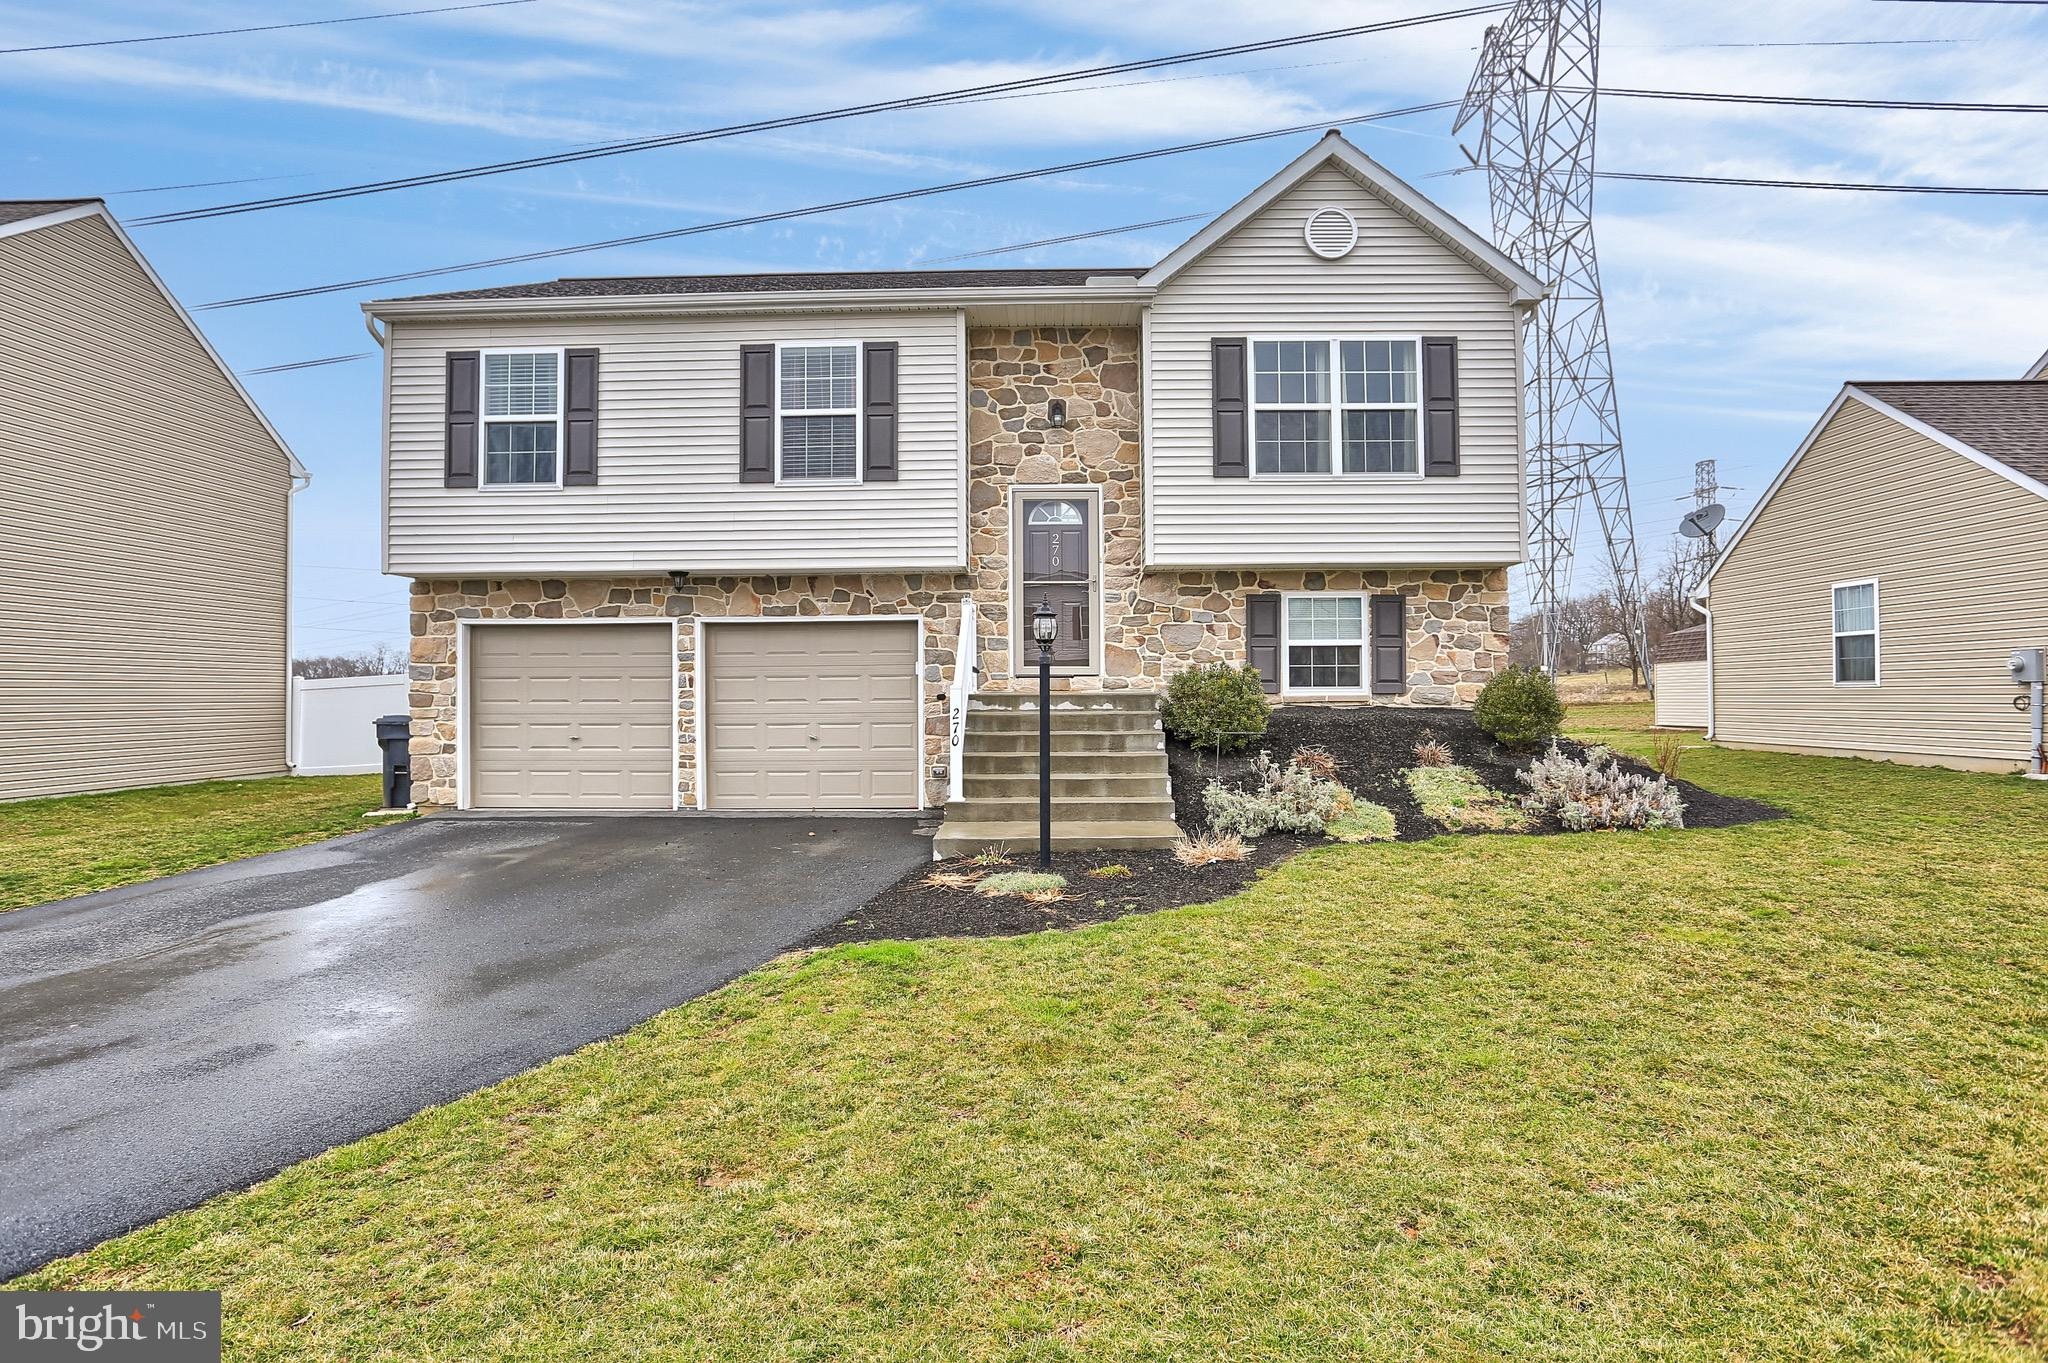 270 CYPRESS STREET, BAINBRIDGE, PA 17502